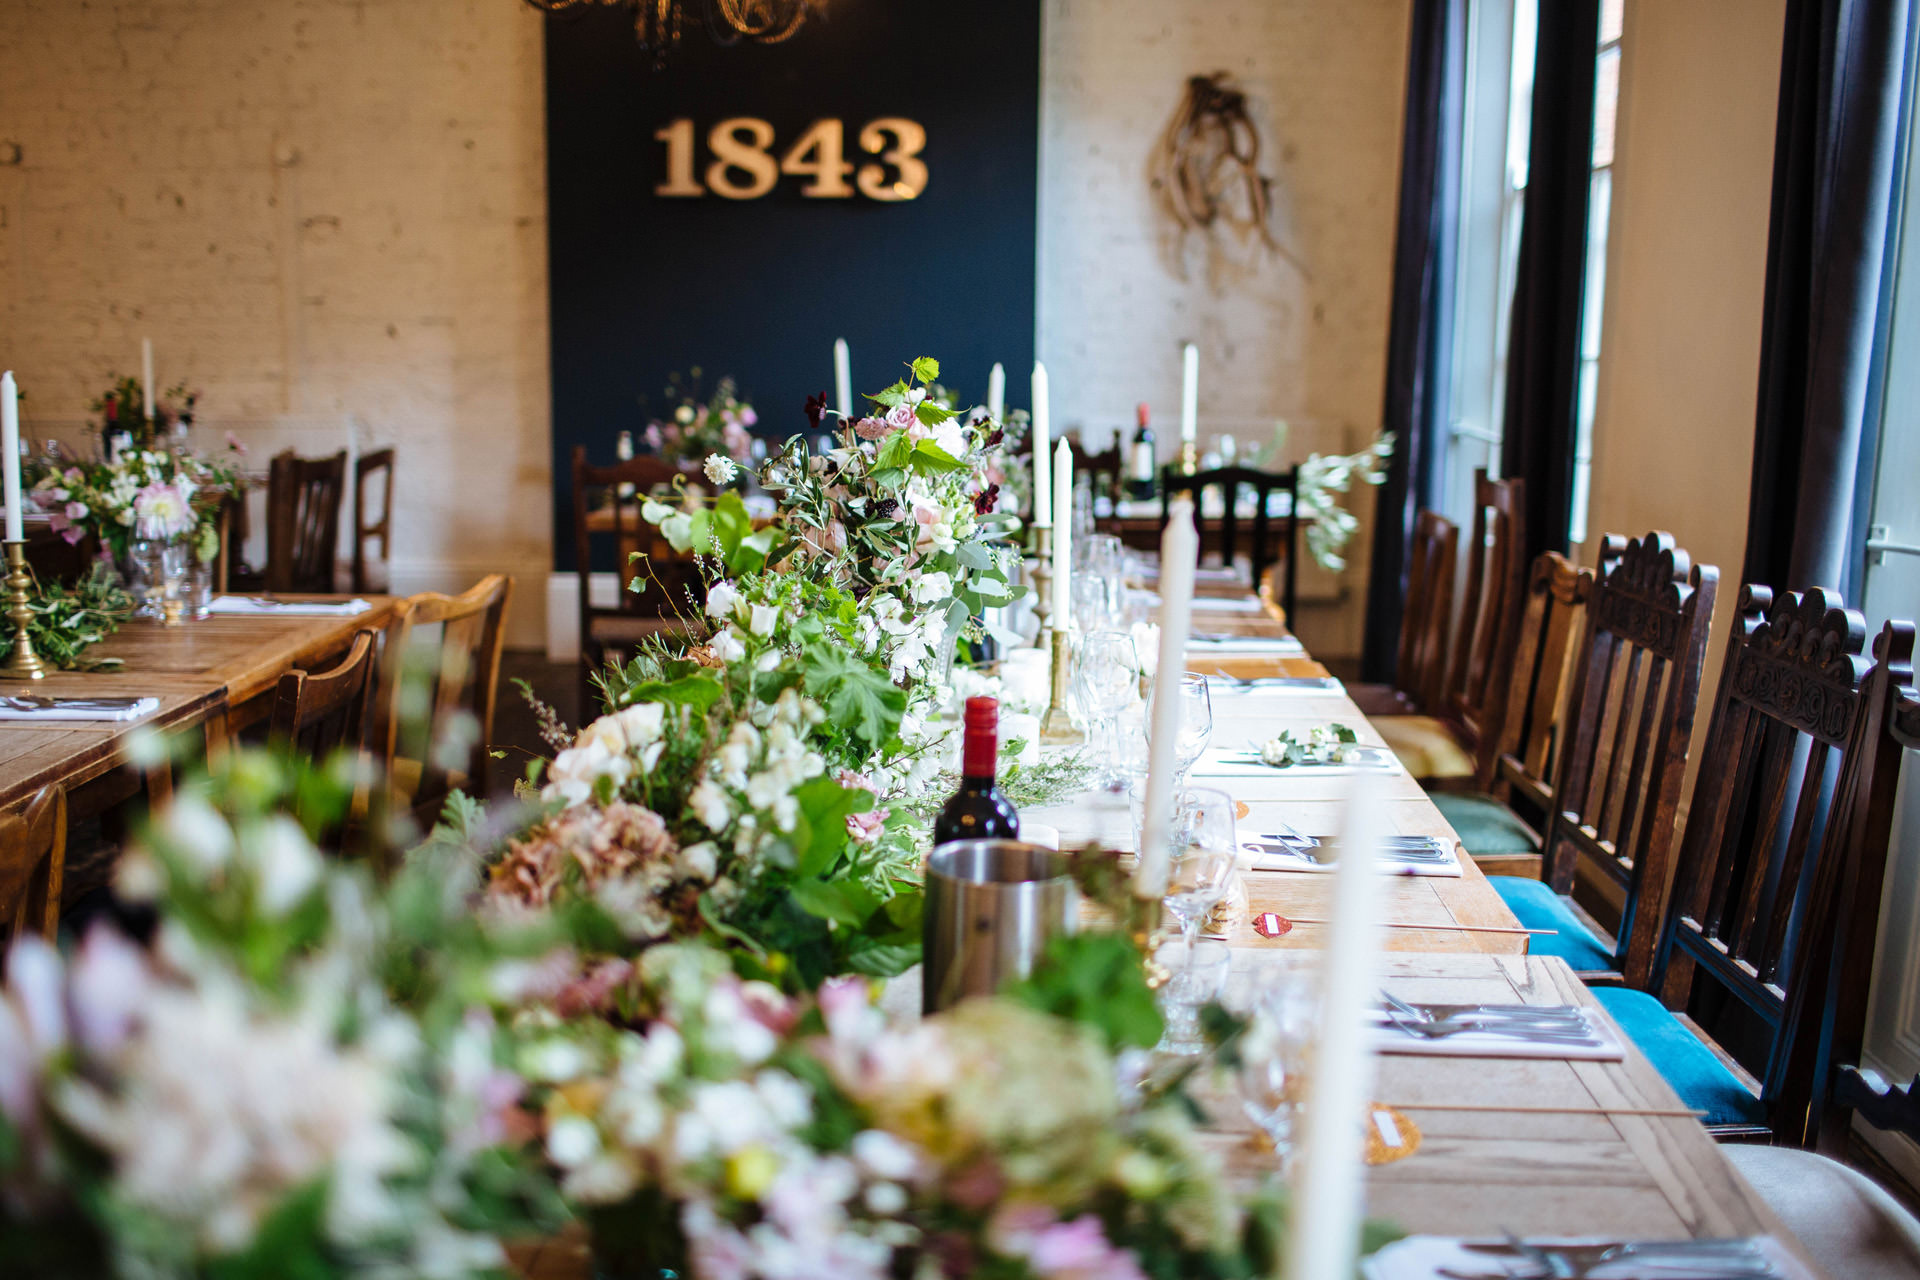 striking and wild wedding flowers with lots of greenery over rustic pub table